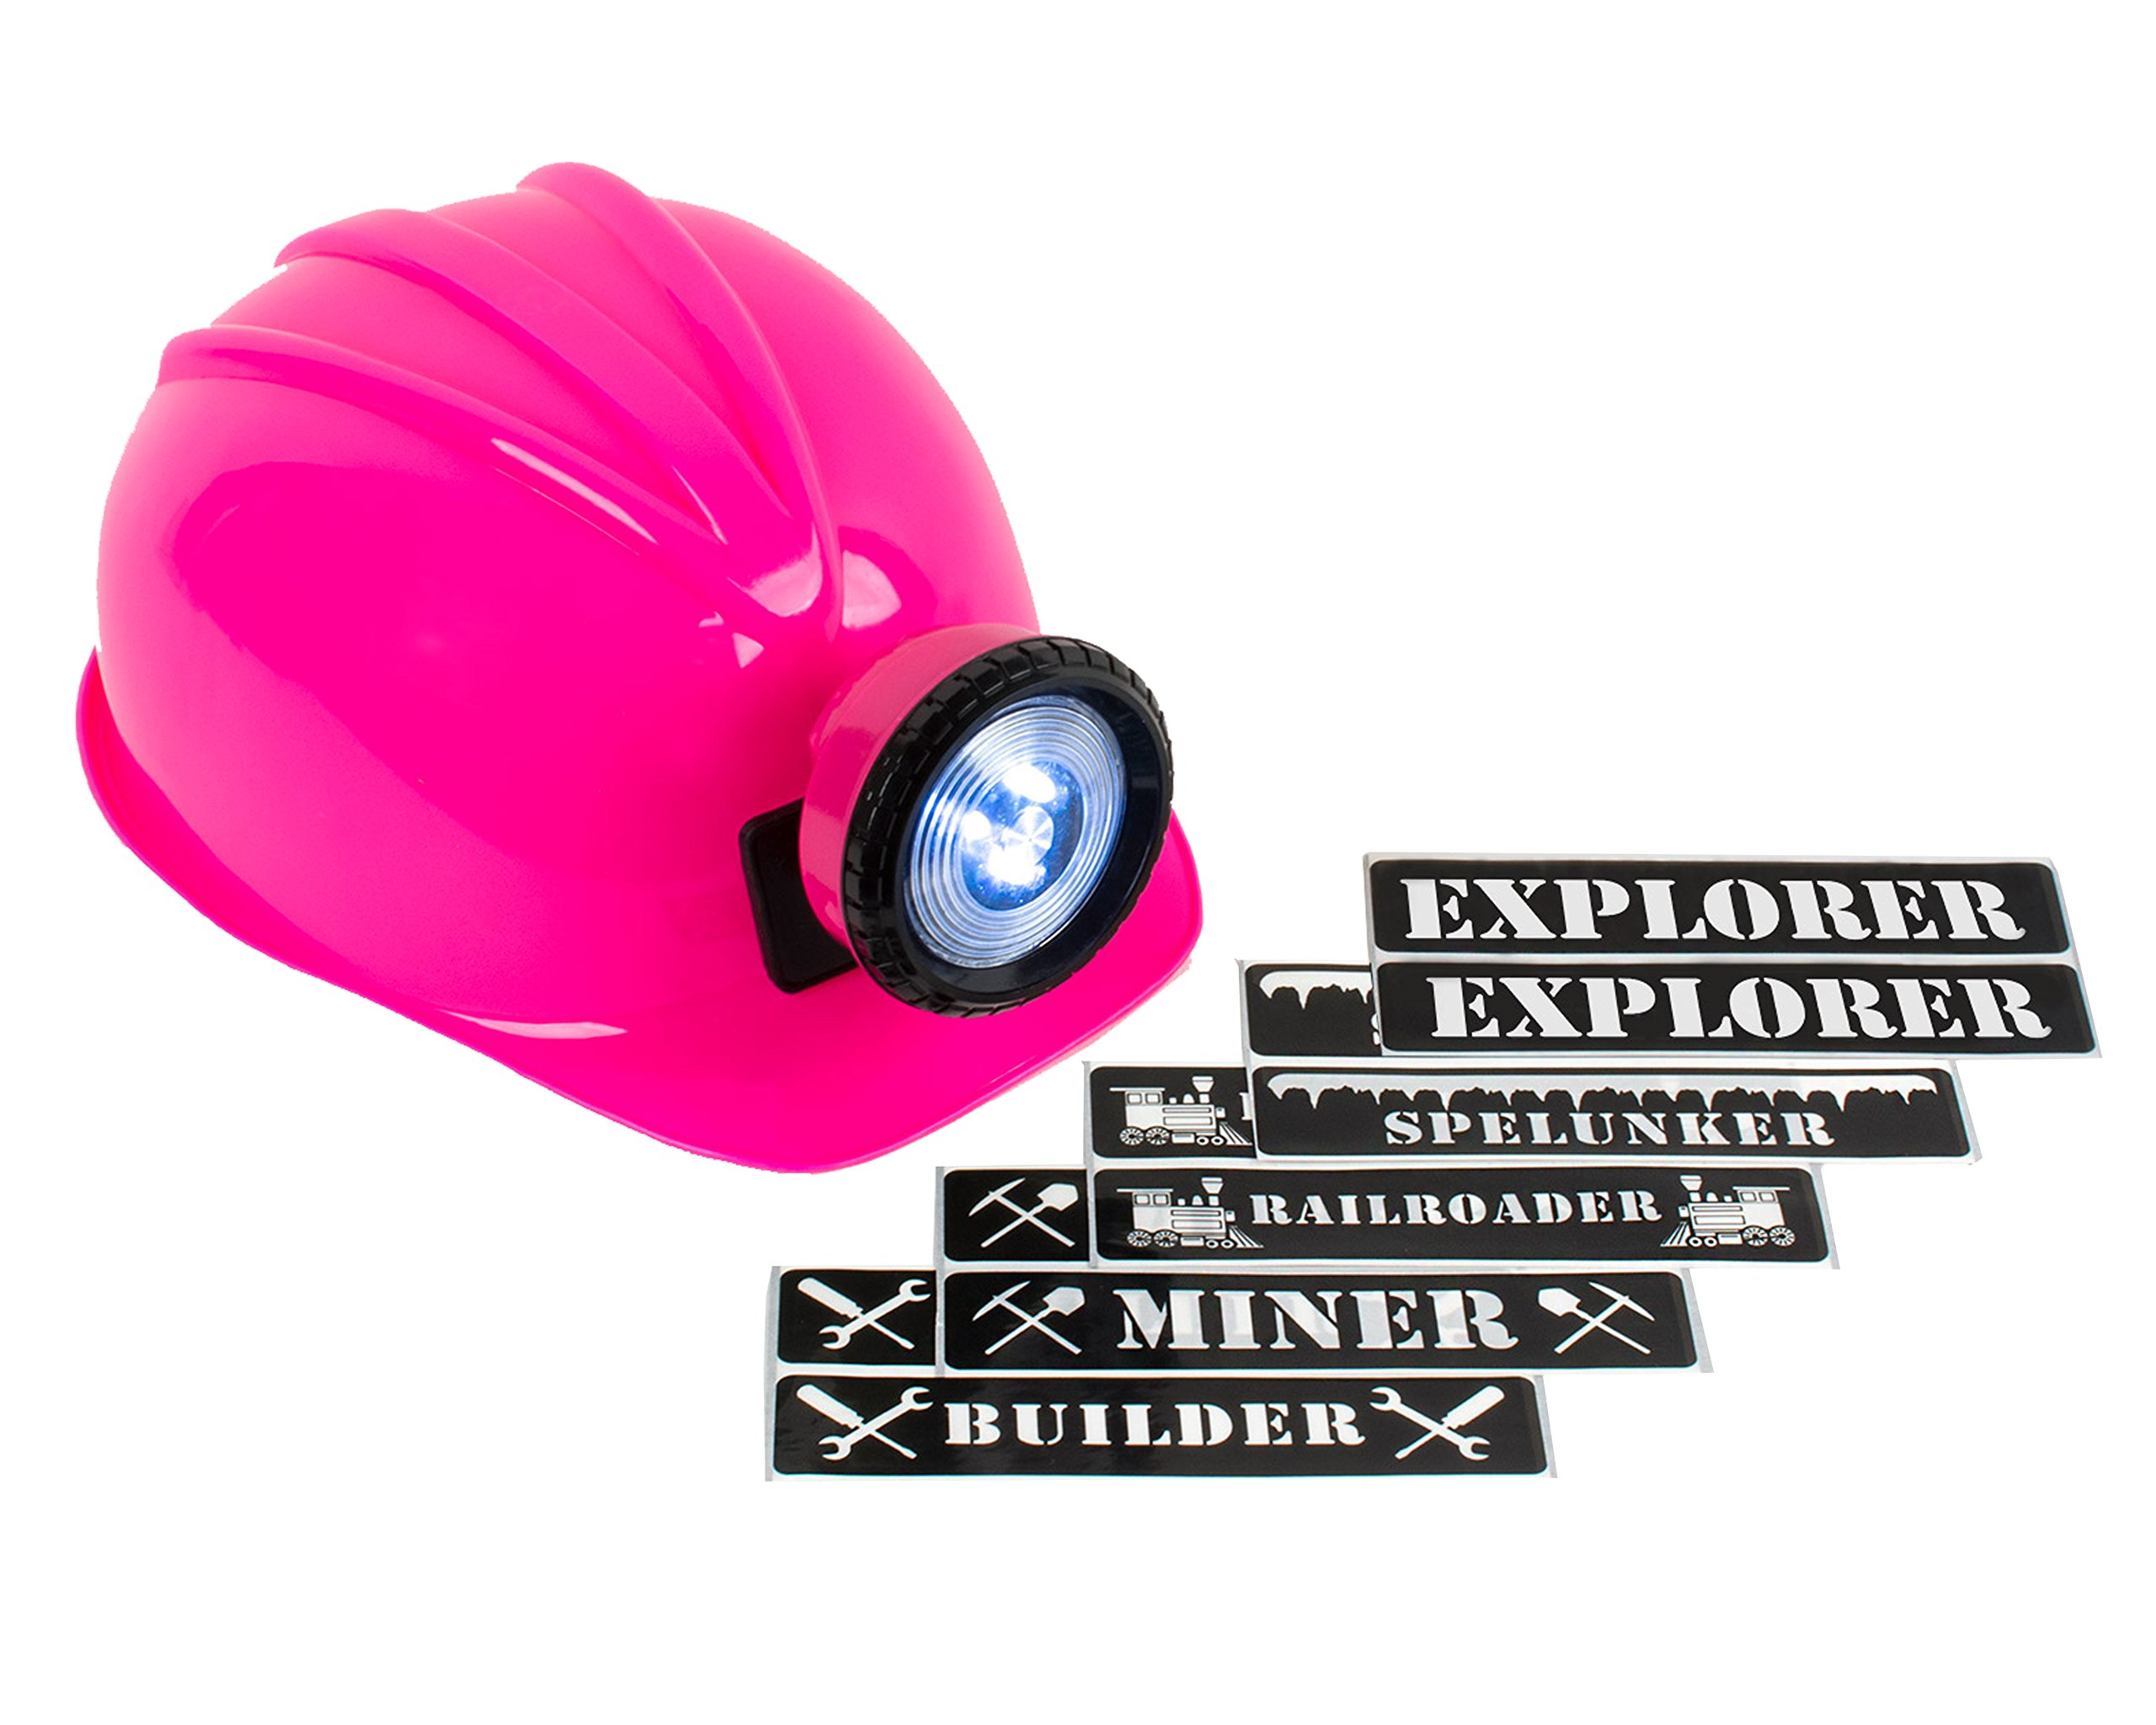 Light-up Hard Hat Including Miner, Railroader, Builder and Spelunker Helmet Labels (Pink) by Squire Boone Village (Image #1)